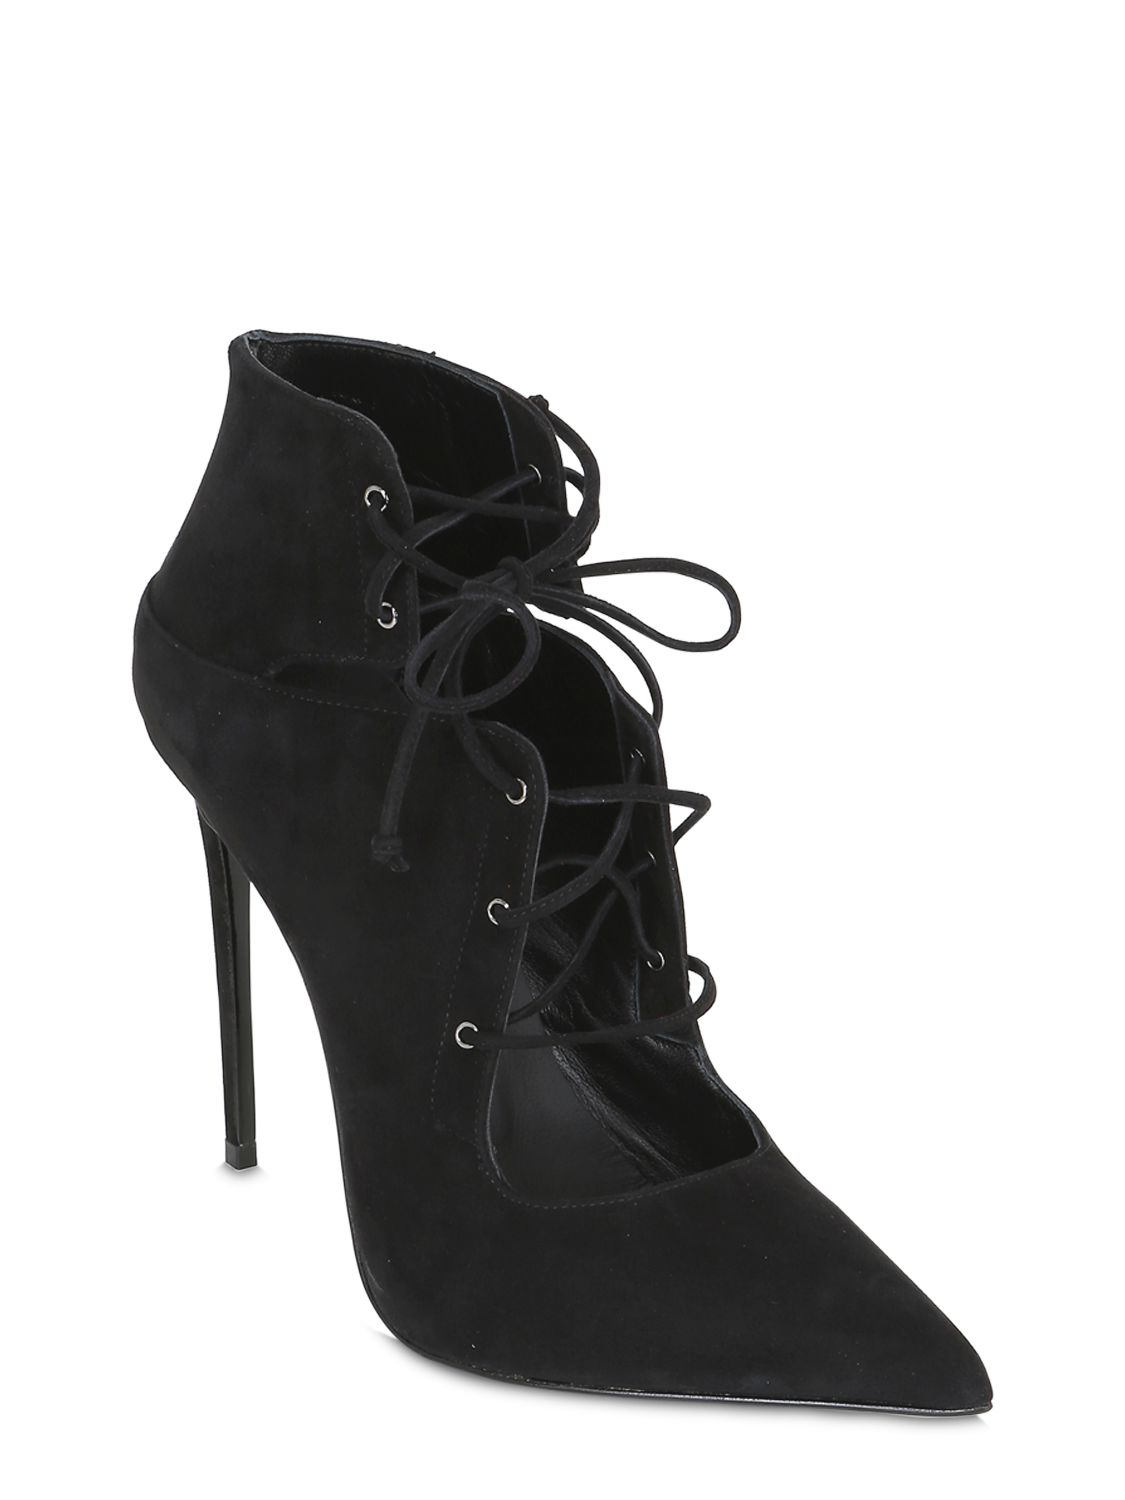 Le Silla Boots Le Silla 110mm Lace Up Suede Boots In Black Lyst